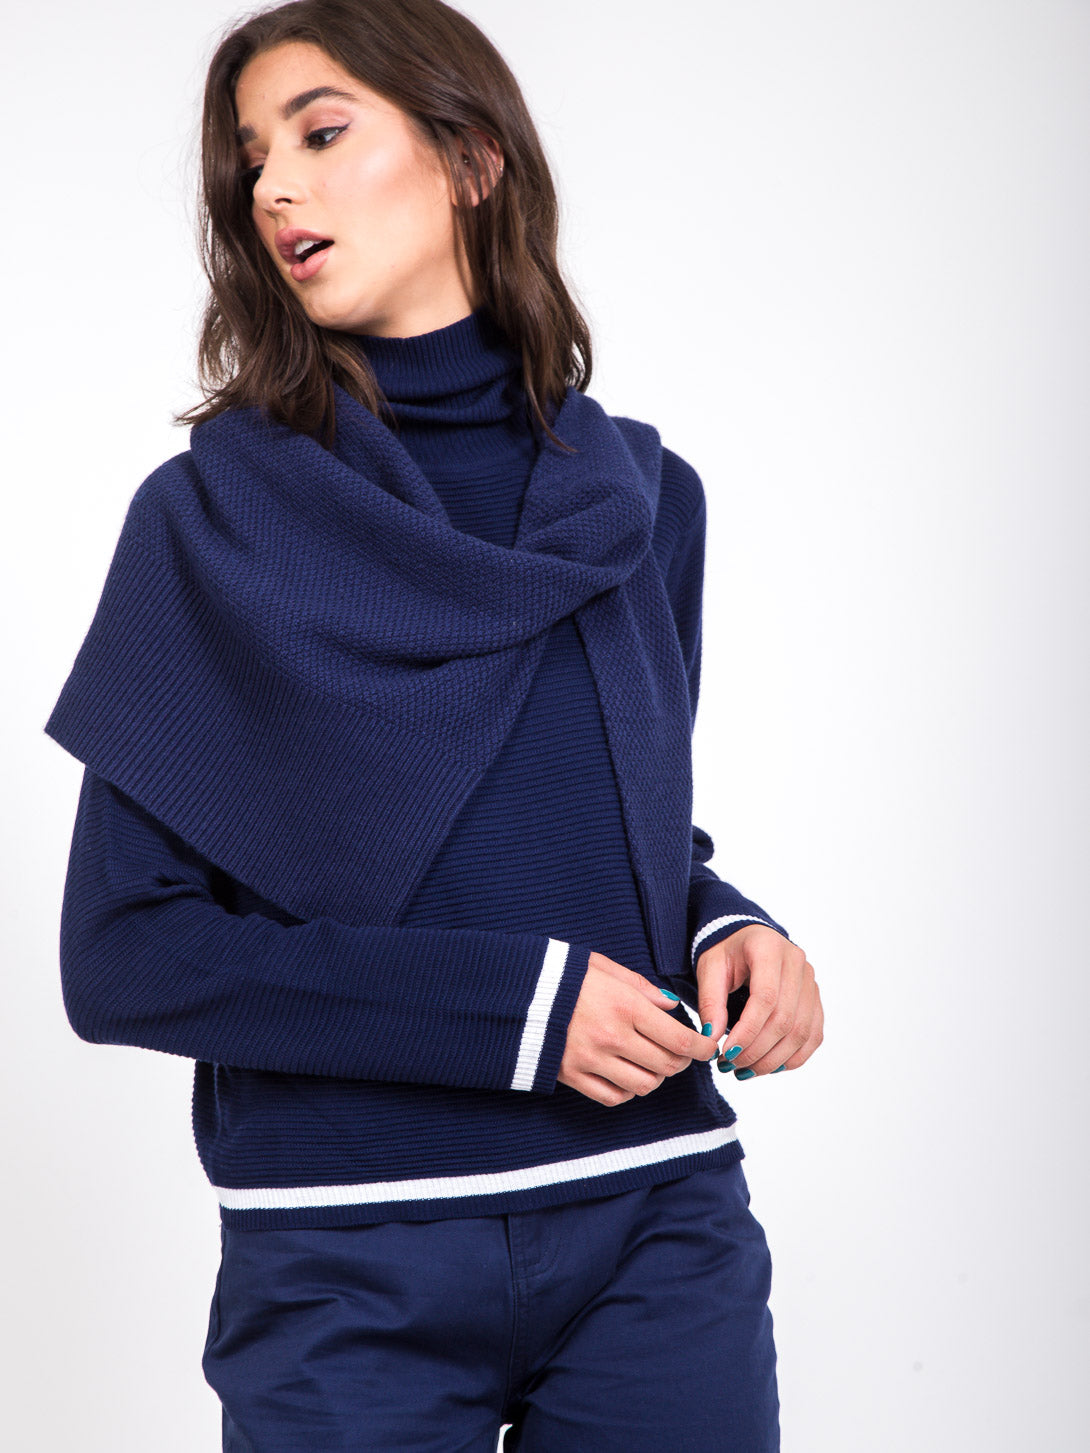 The Adeline Sweater